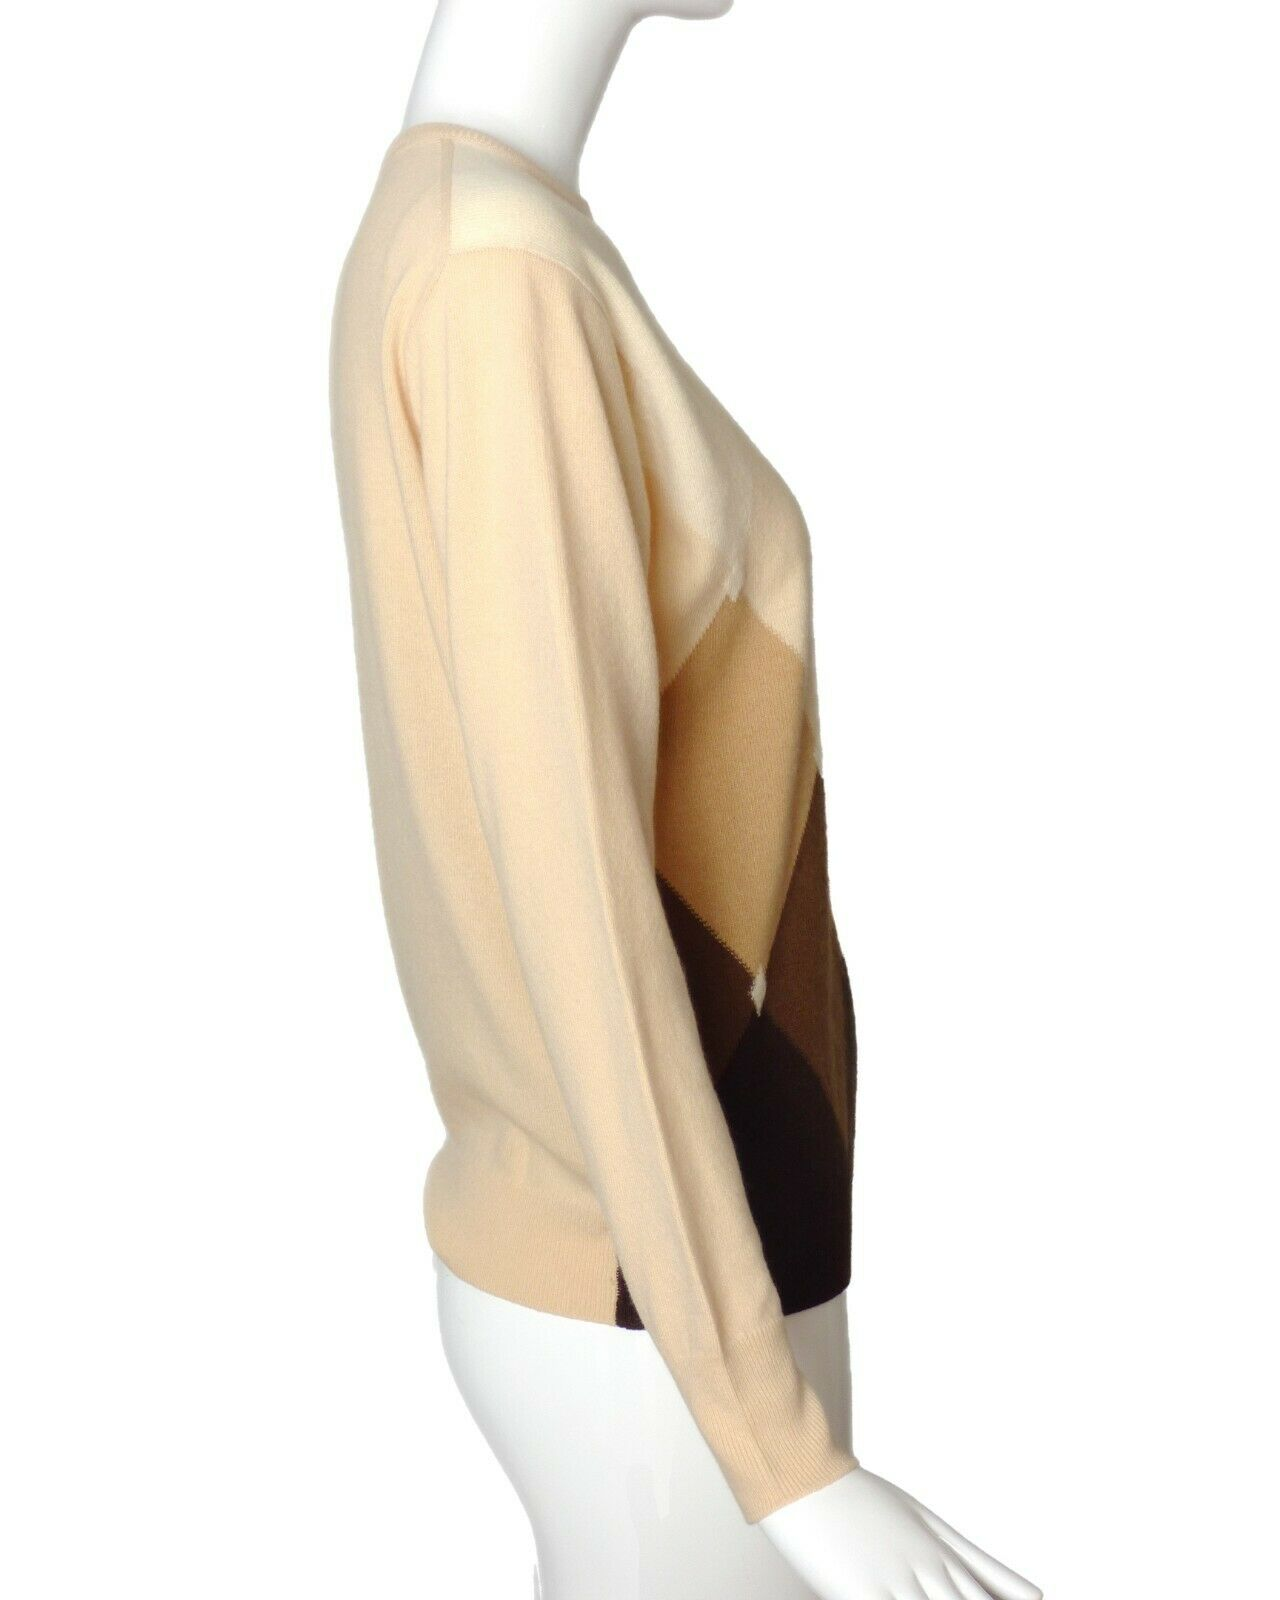 GUCCI-1970s Cashmere Sweater, Size-8 - image 2